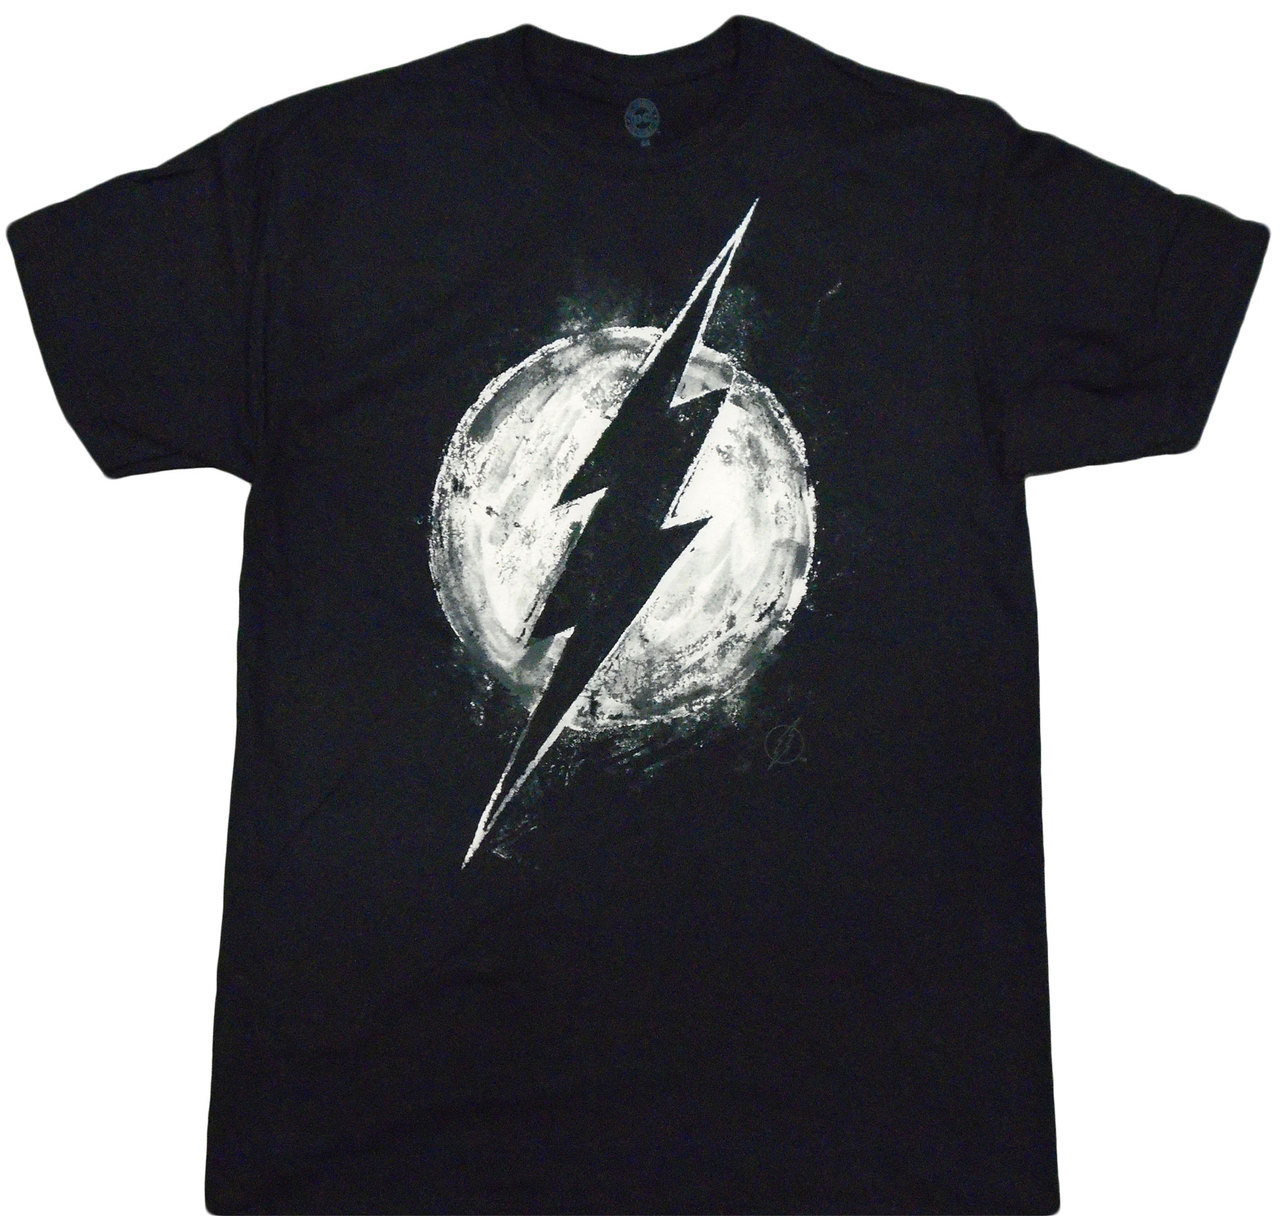 T-Shirt Flash Distress Black S DC Comics wVVOtn